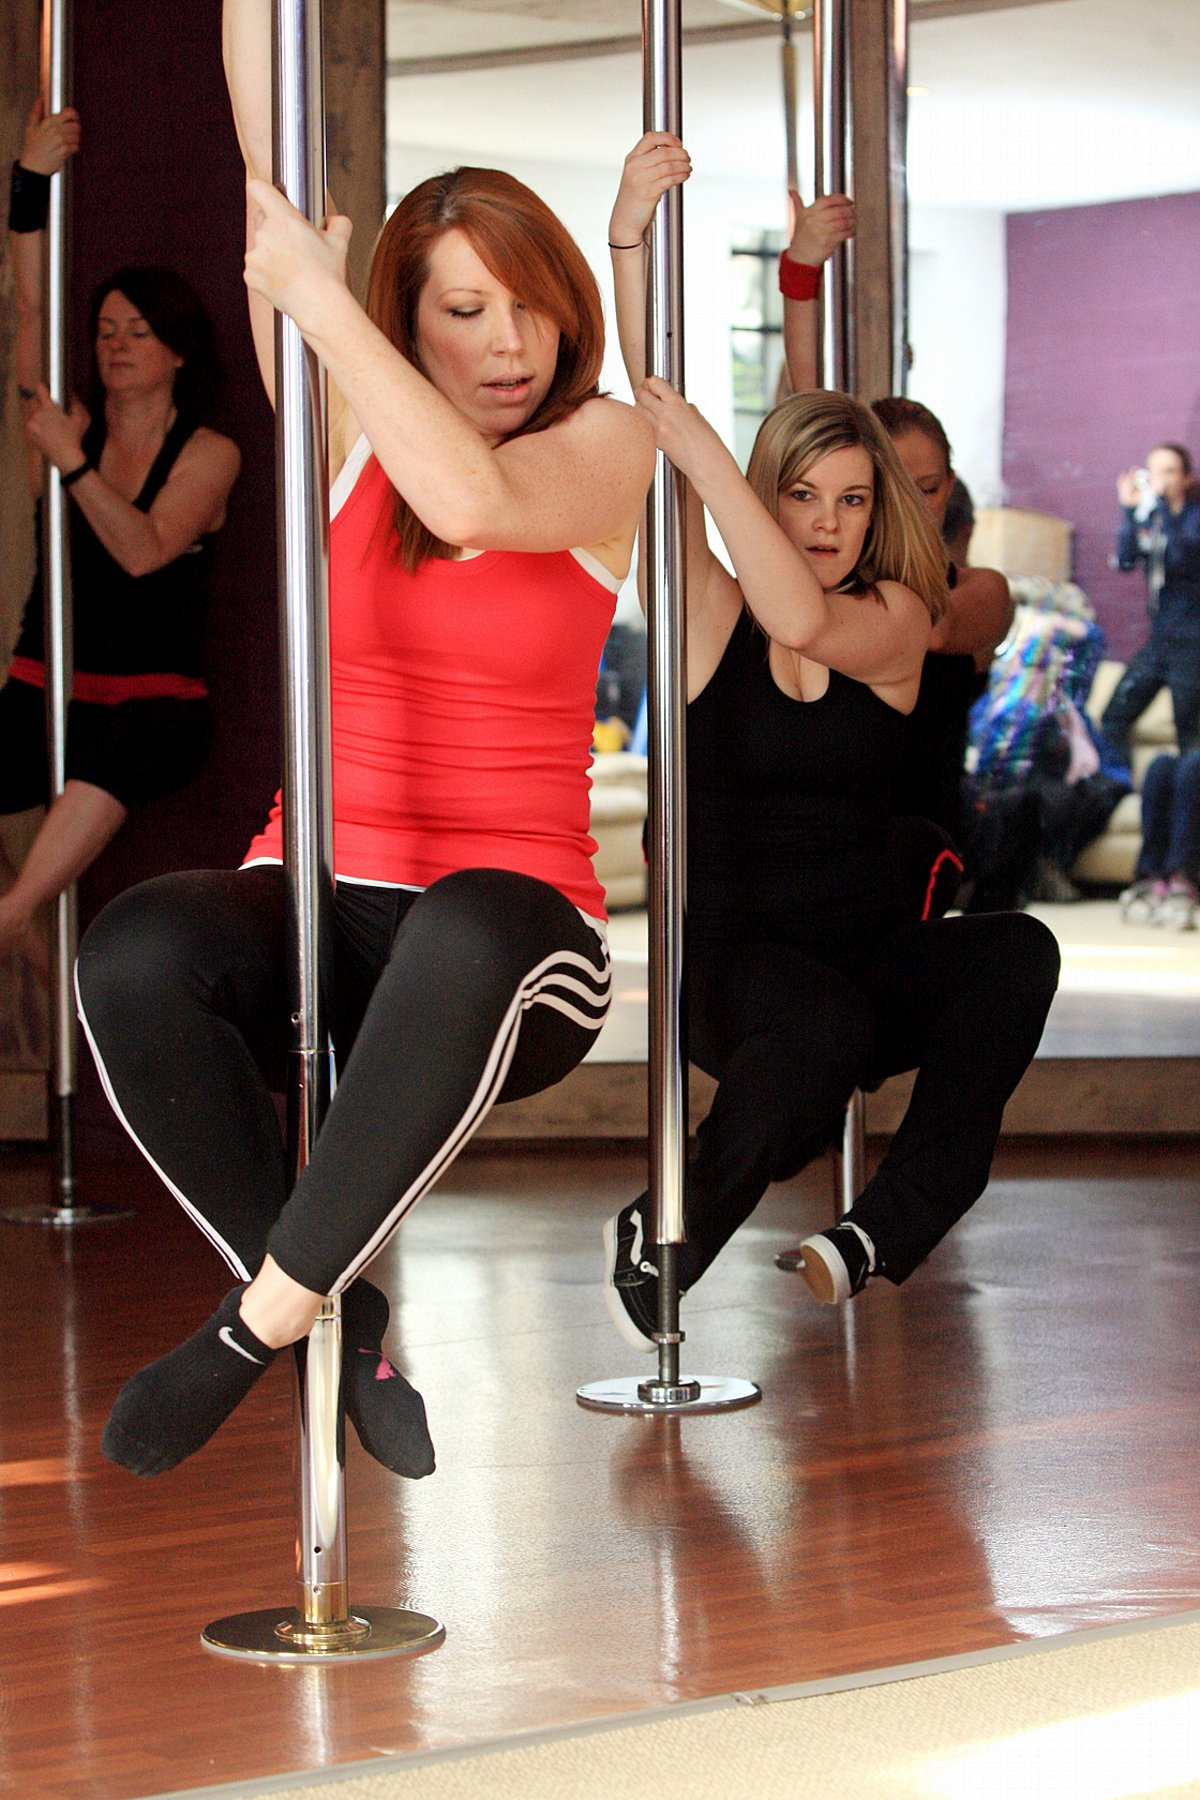 Pole dancers take part in world record attempt